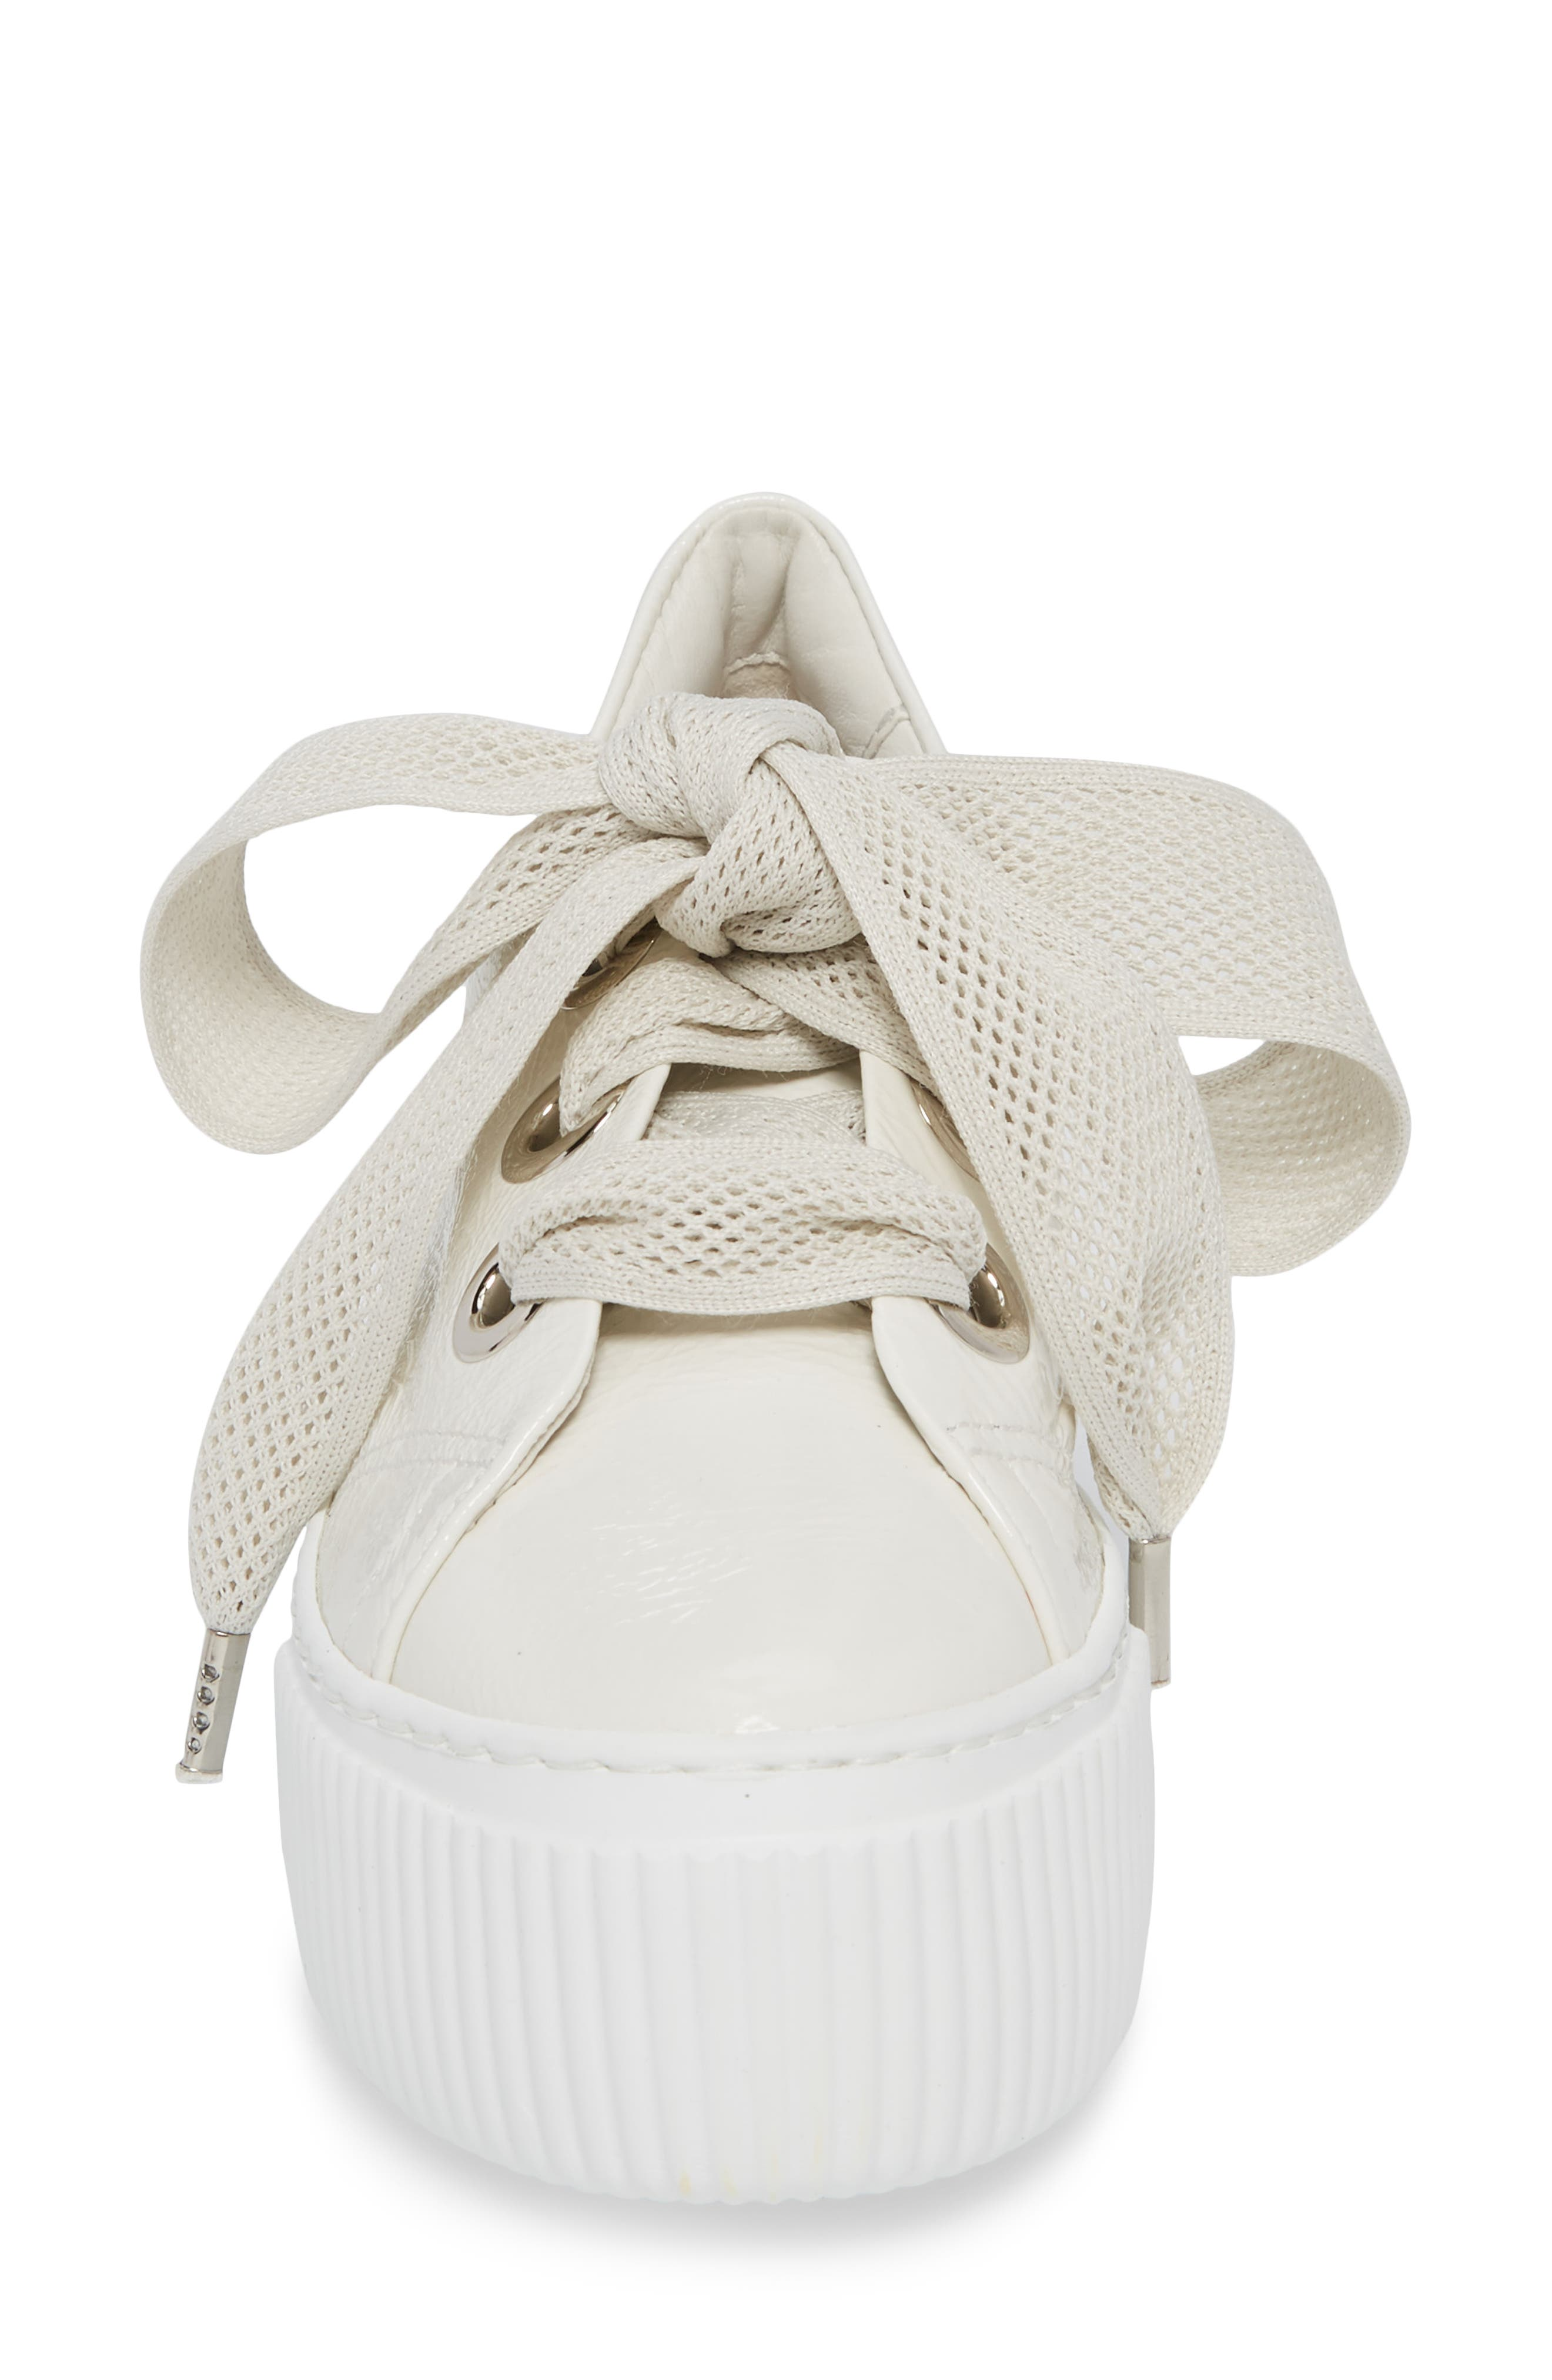 Platform Sneaker,                             Alternate thumbnail 4, color,                             WHITE GLAMMY LEATHER